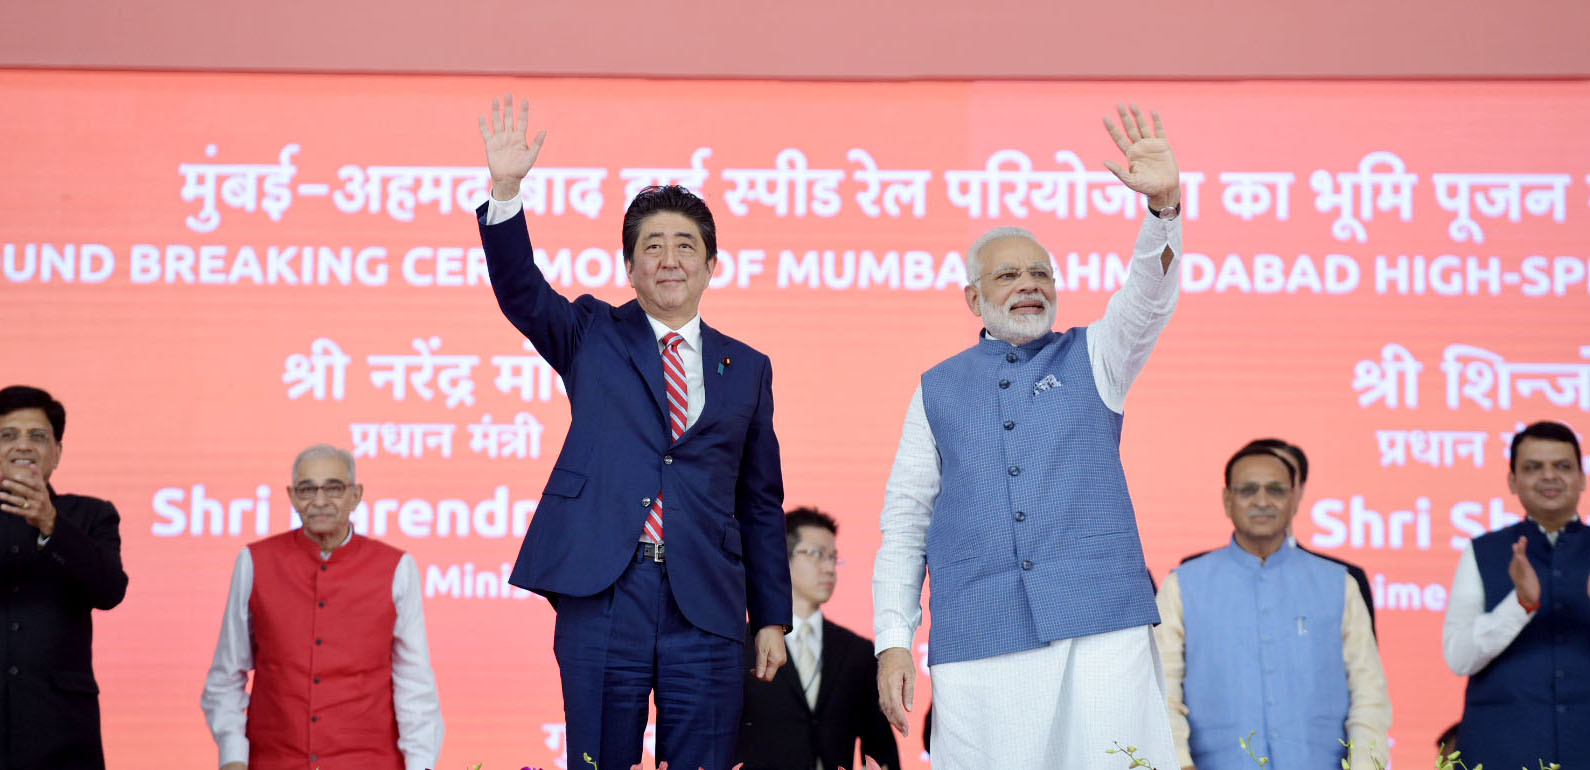 The Prime Minister, Shri Narendra Modi and the Prime Minister of Japan, Mr. Shinzo Abe at Ground Breaking ceremony of Mumbai-Ahmedabad High Speed Rail Project, at Ahmedabad, Gujarat on September 14, 2017. The Governor of Gujarat, Shri O.P. Kohli, the Union Minister for Railways and Coal, Shri Piyush Goyal, the Chief Minister of Gujarat, Shri Vijay Rupani and the Chief Minister of Maharashtra, Shri Devendra Fadnavis are also seen.